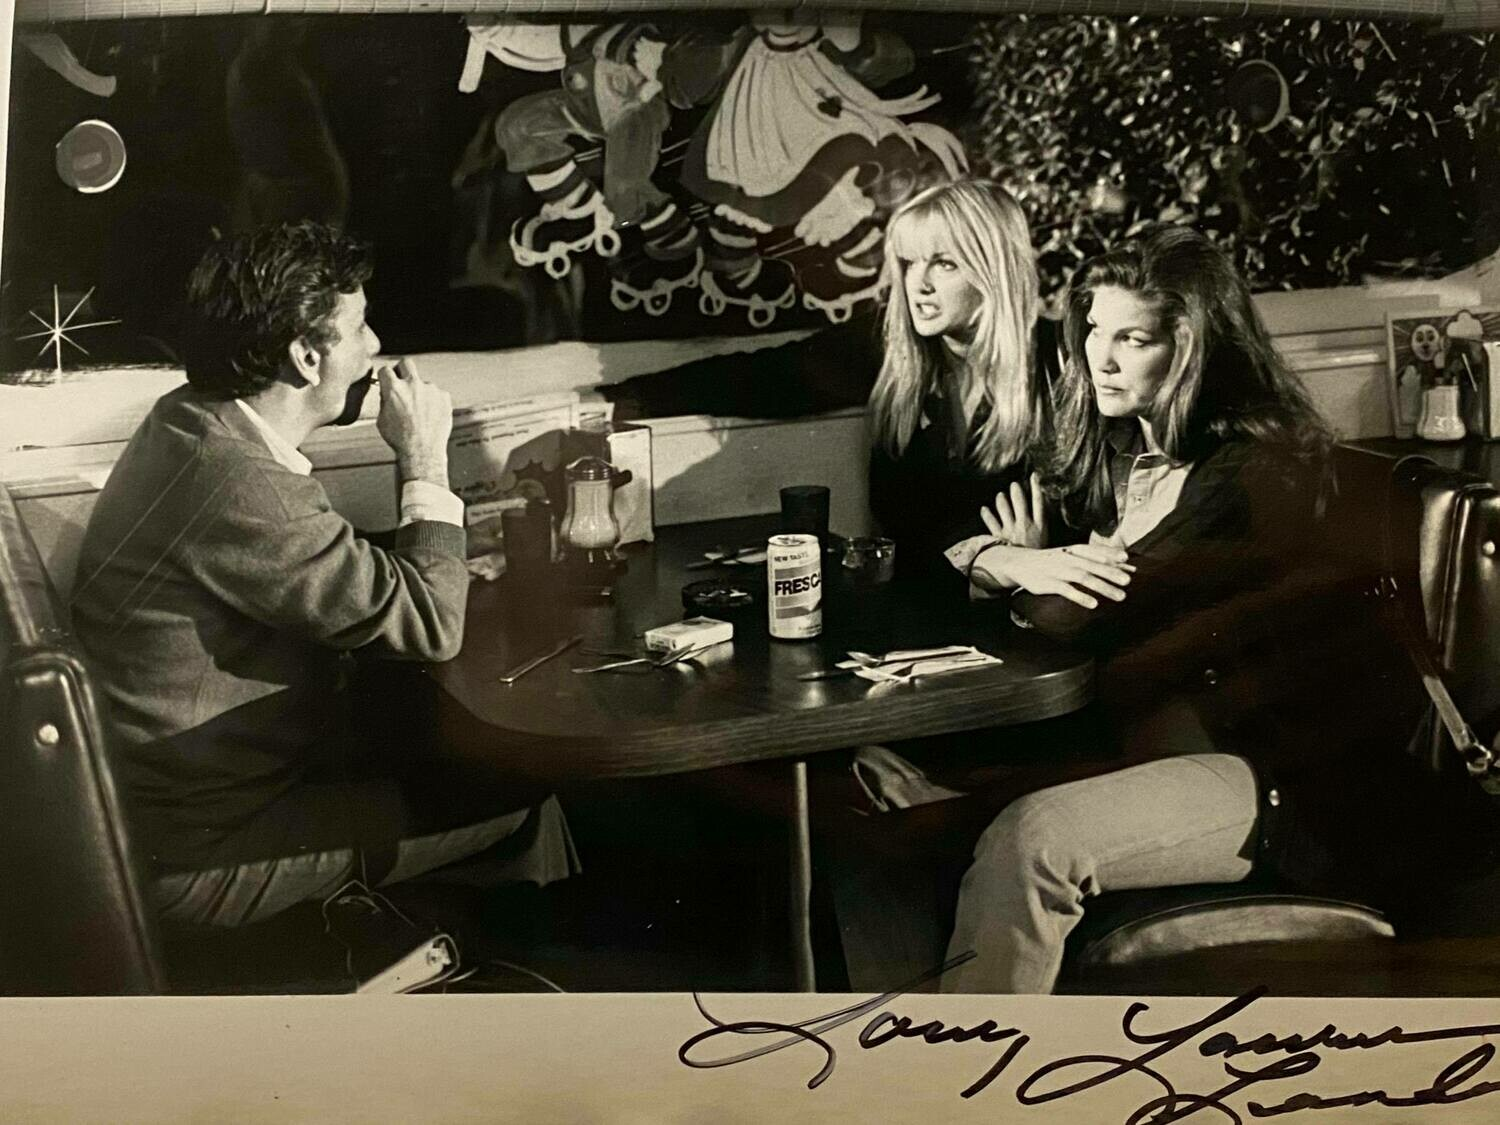 All The Marbles 8x10 Promo Photo Autographed By Laurene Landon